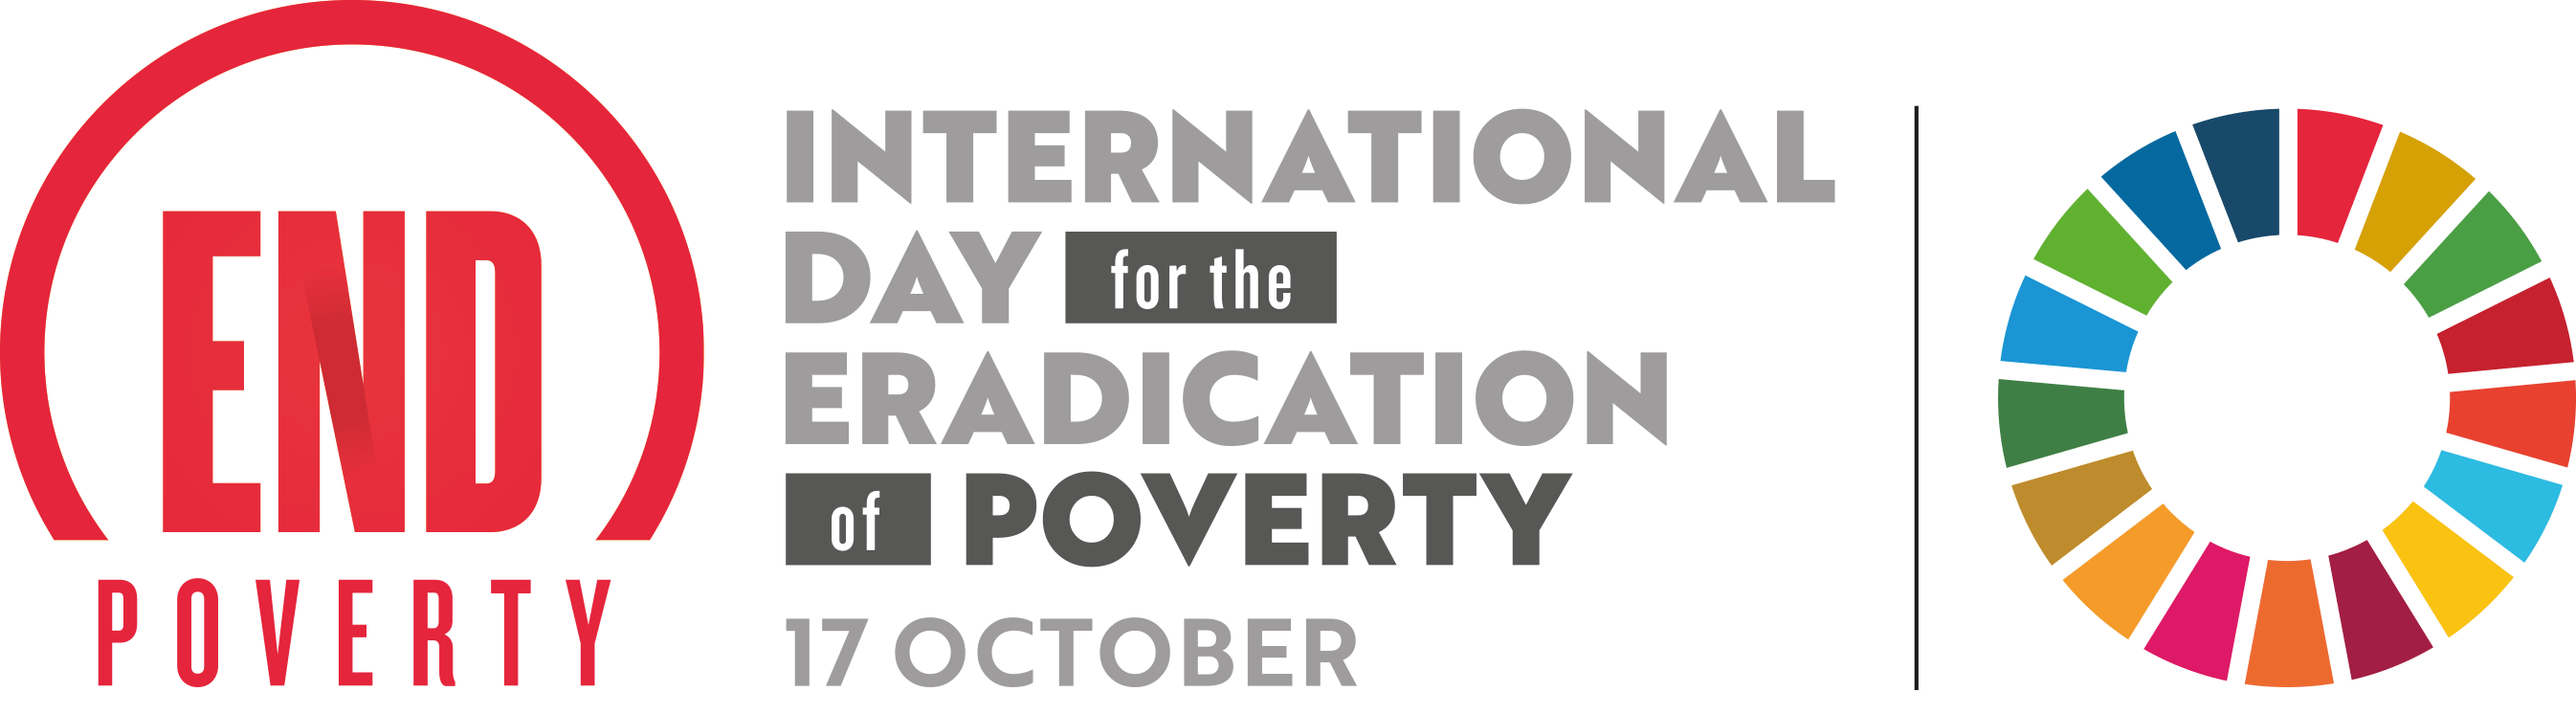 International Day for the Eradication of Poverty Logo